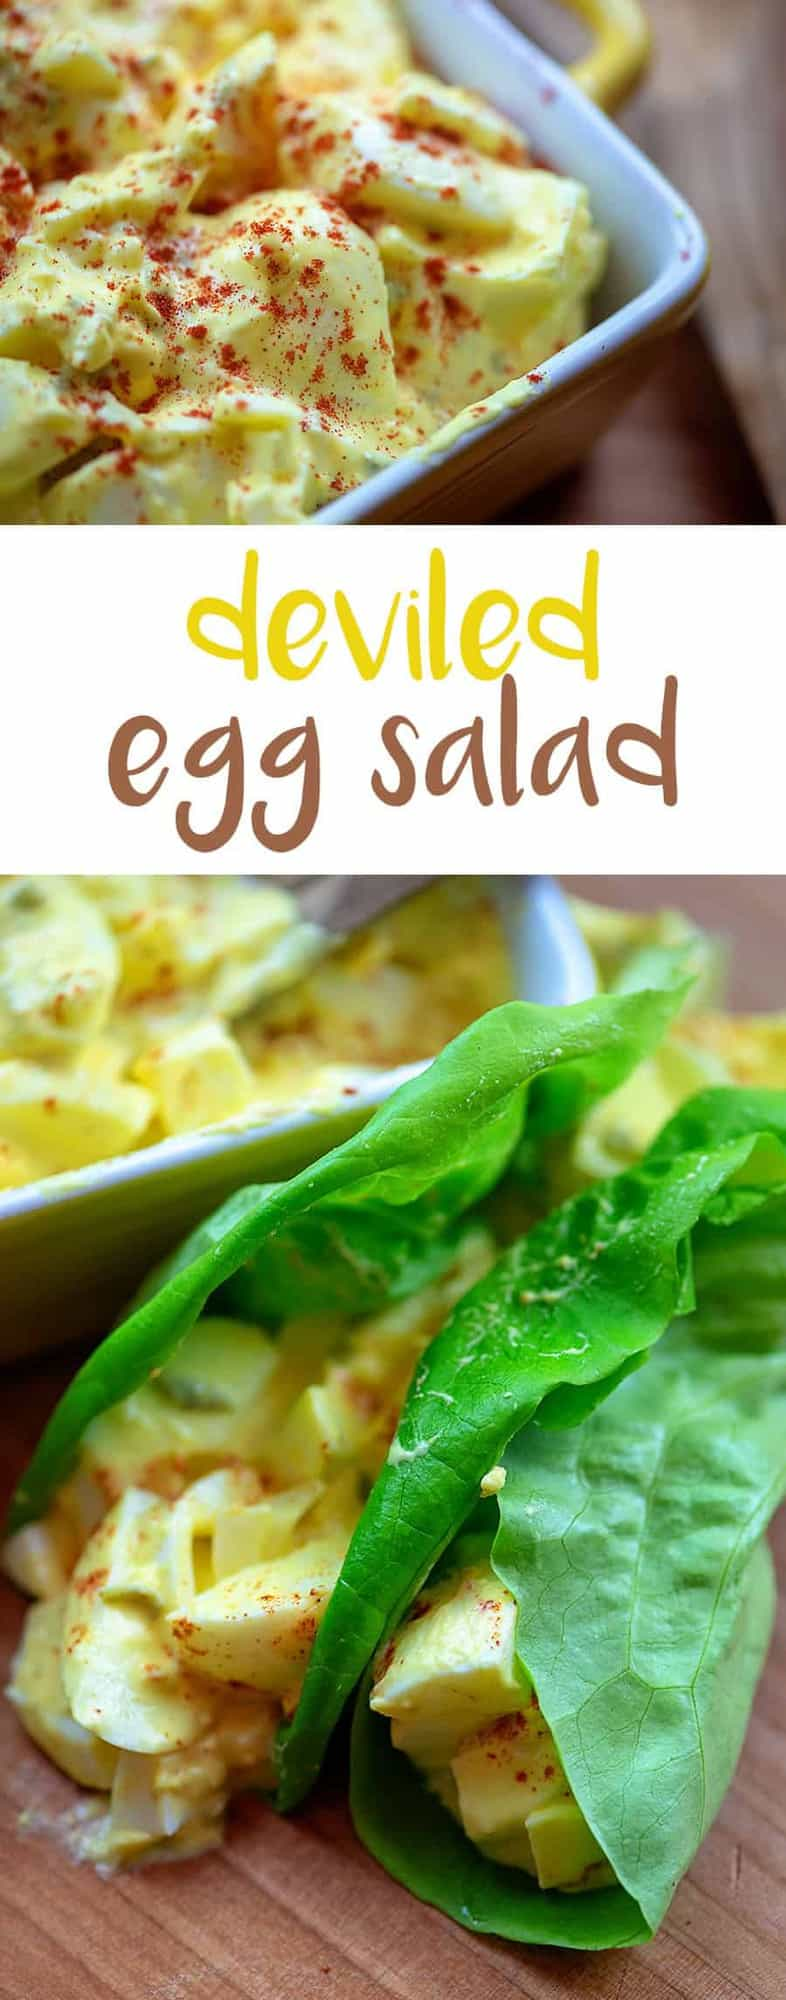 lettuce wrapped egg salad sandwiches